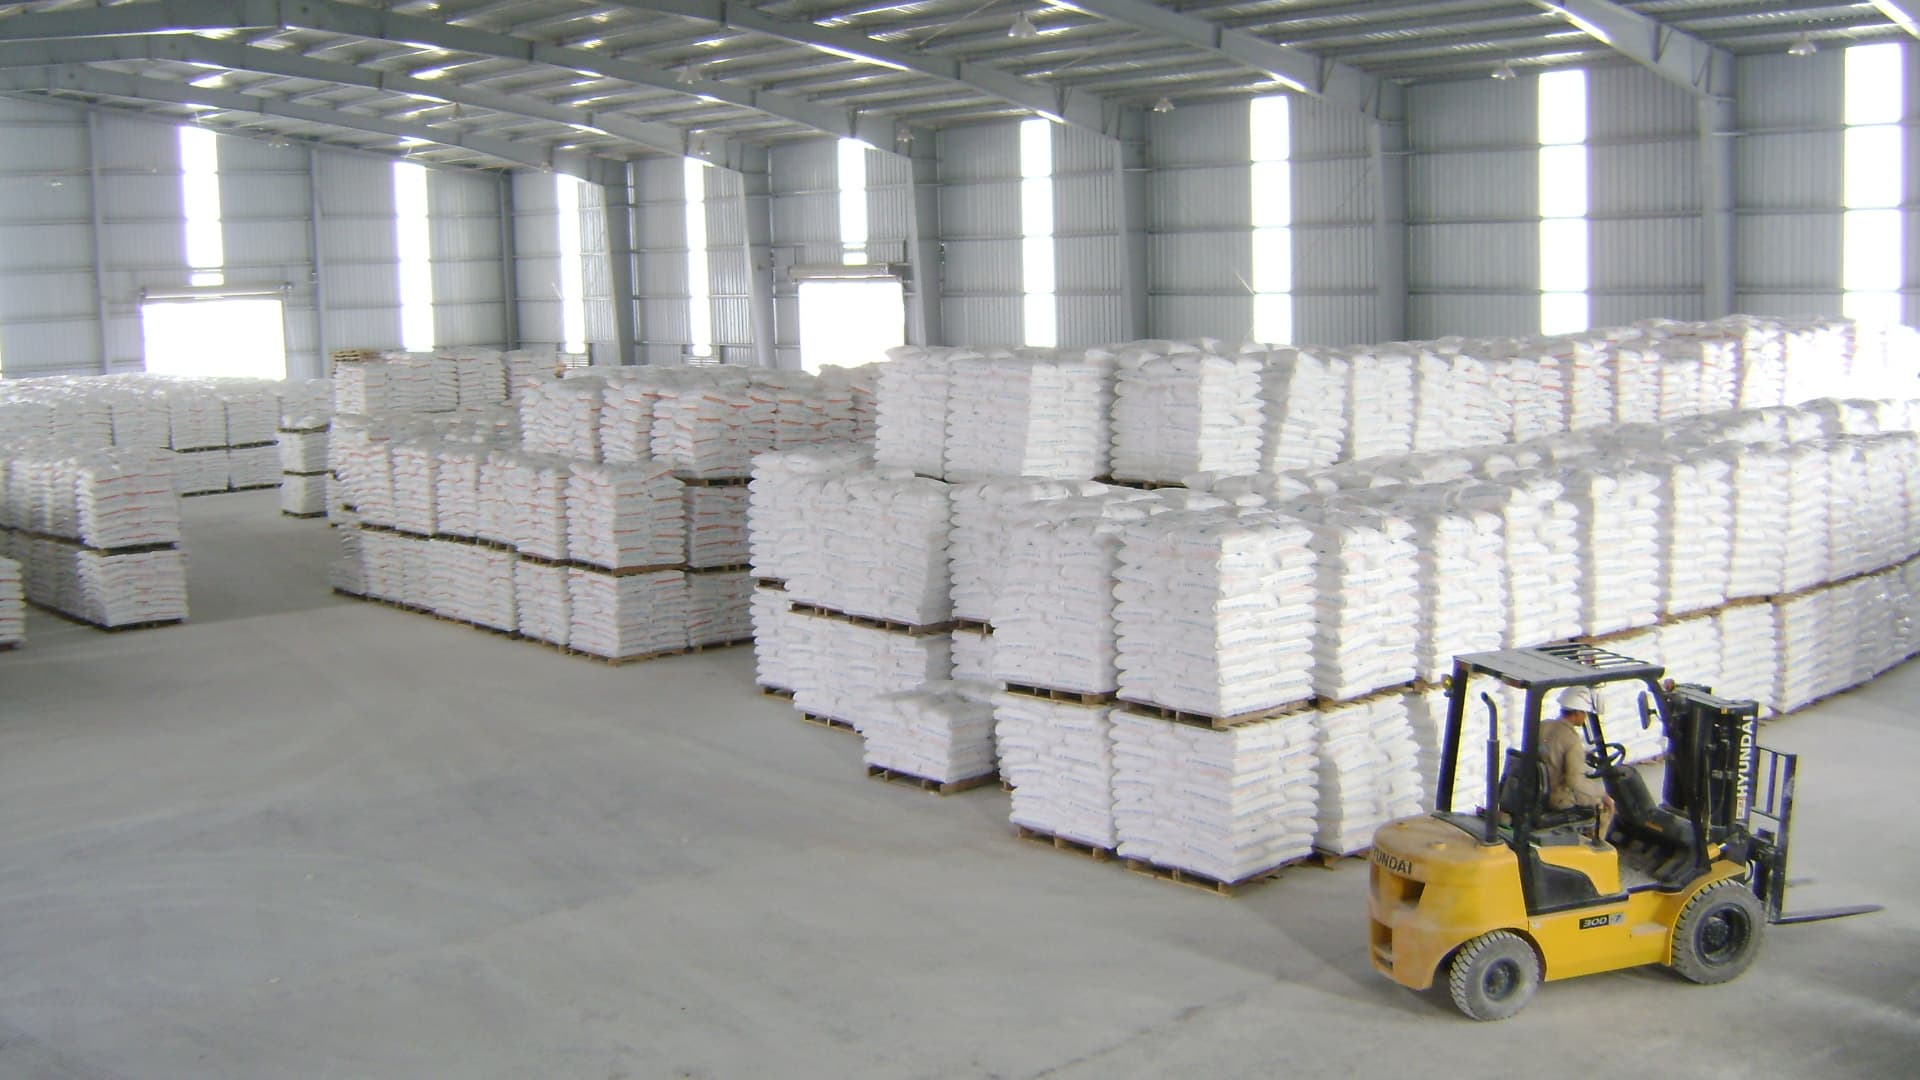 highly appreciated calcium carbonate powder grinding China calcium carbonate manufacturers - select 2018 high quality calcium carbonate products in best price from certified chinese calcium manufacturers, activated carbon suppliers pingmei brand precipitated calcium carbonate, light, 98% min 1 product introduction: high white light calcium.